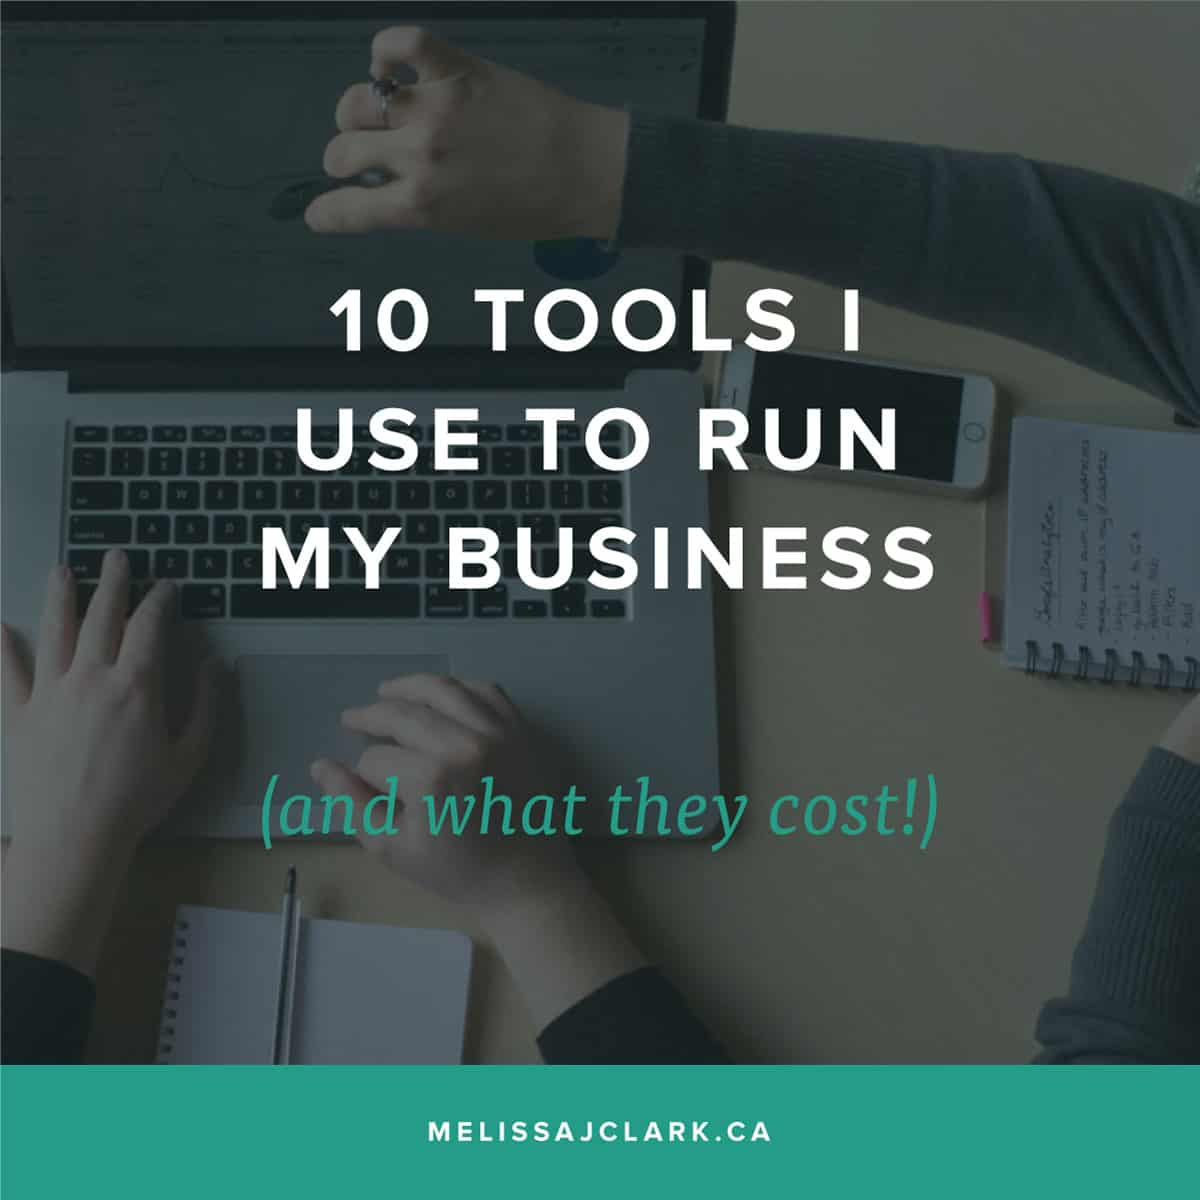 10 Tools I use to run my business (and what they cost!)